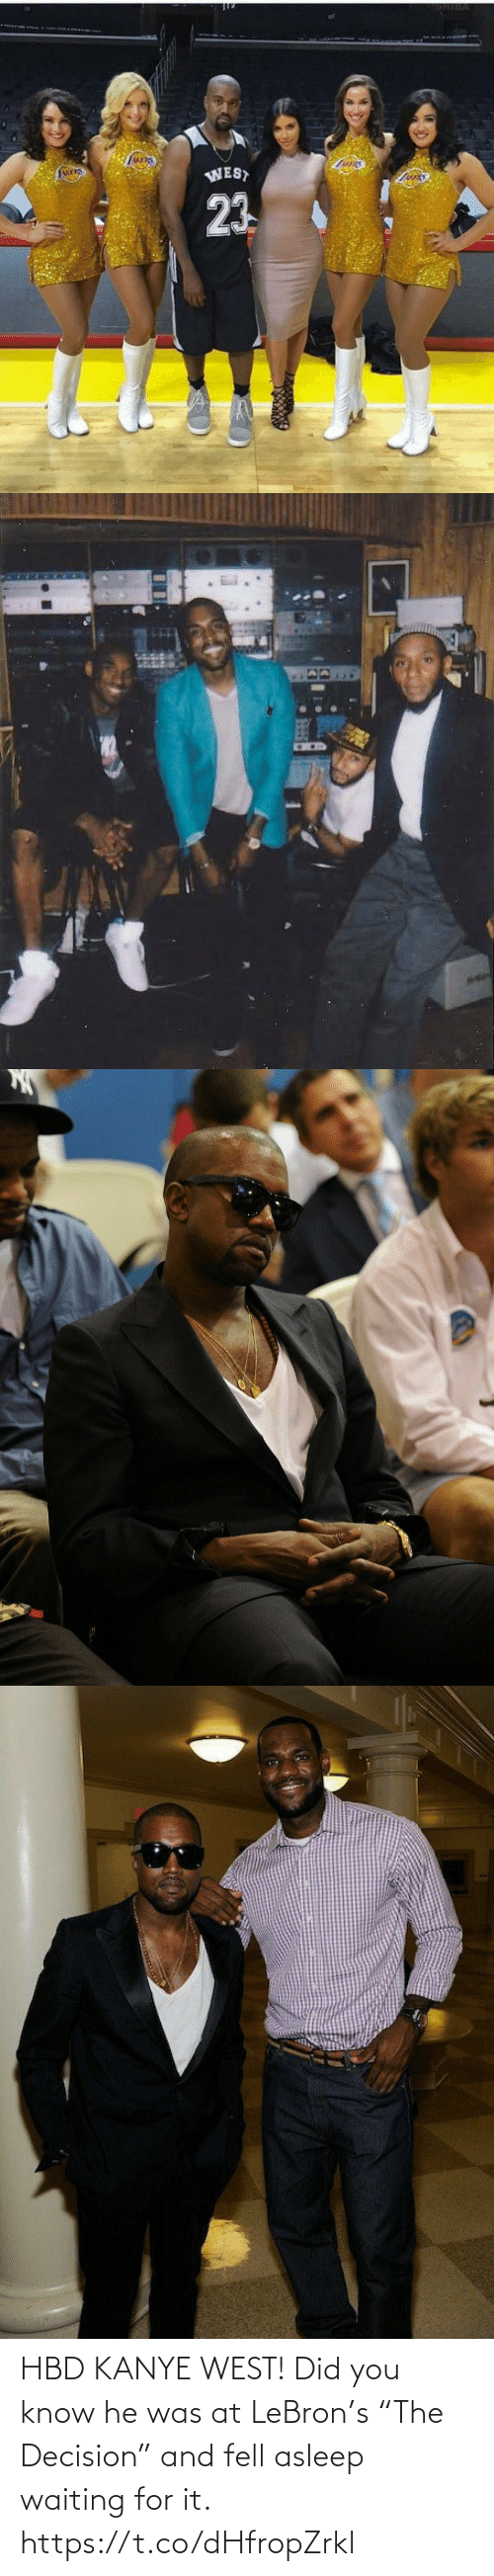 "Kanye West: HBD KANYE WEST! Did you know he was at LeBron's ""The Decision"" and fell asleep waiting for it. https://t.co/dHfropZrkl"